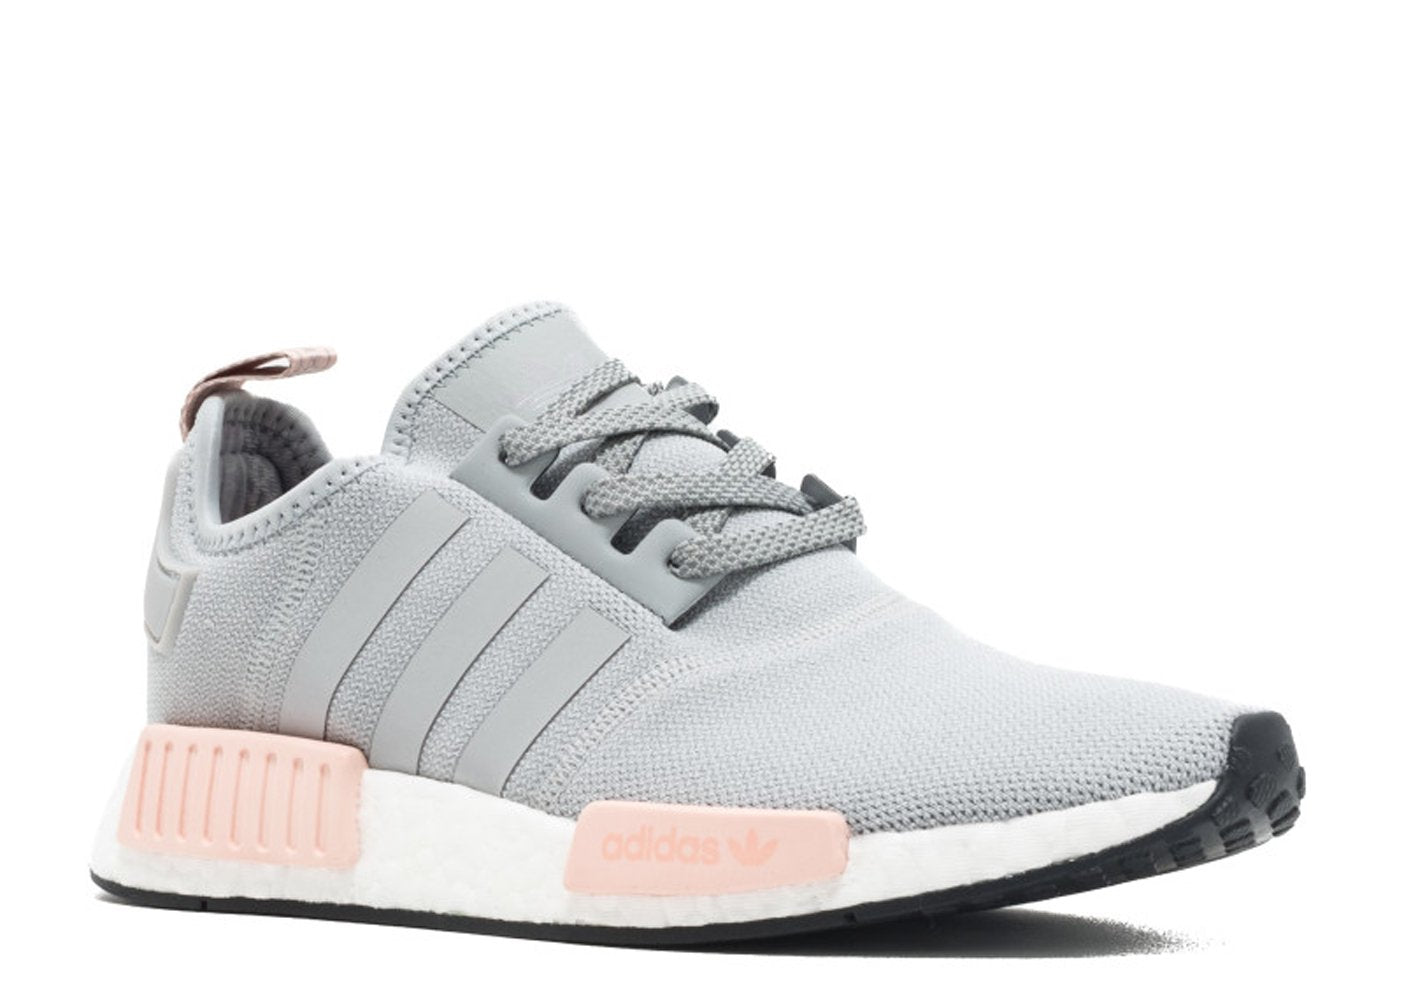 KEEVIN Adidas NMD r1 raw gray pink women's casual shoes ...